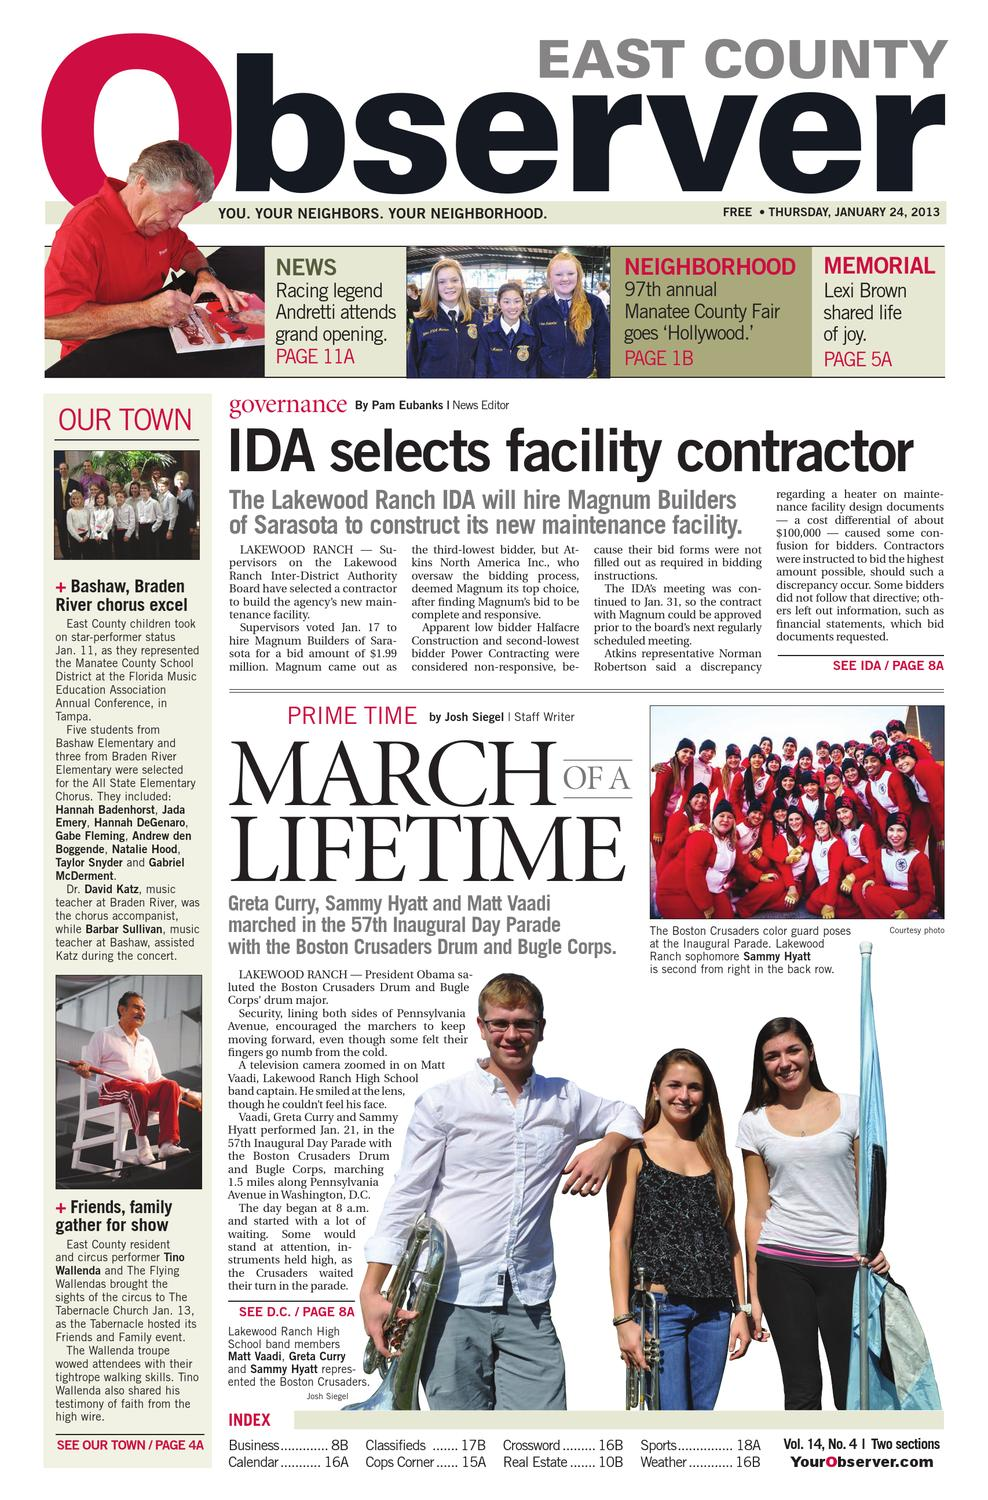 East County Observer 01.24.13 by The Observer Group Inc. - issuu